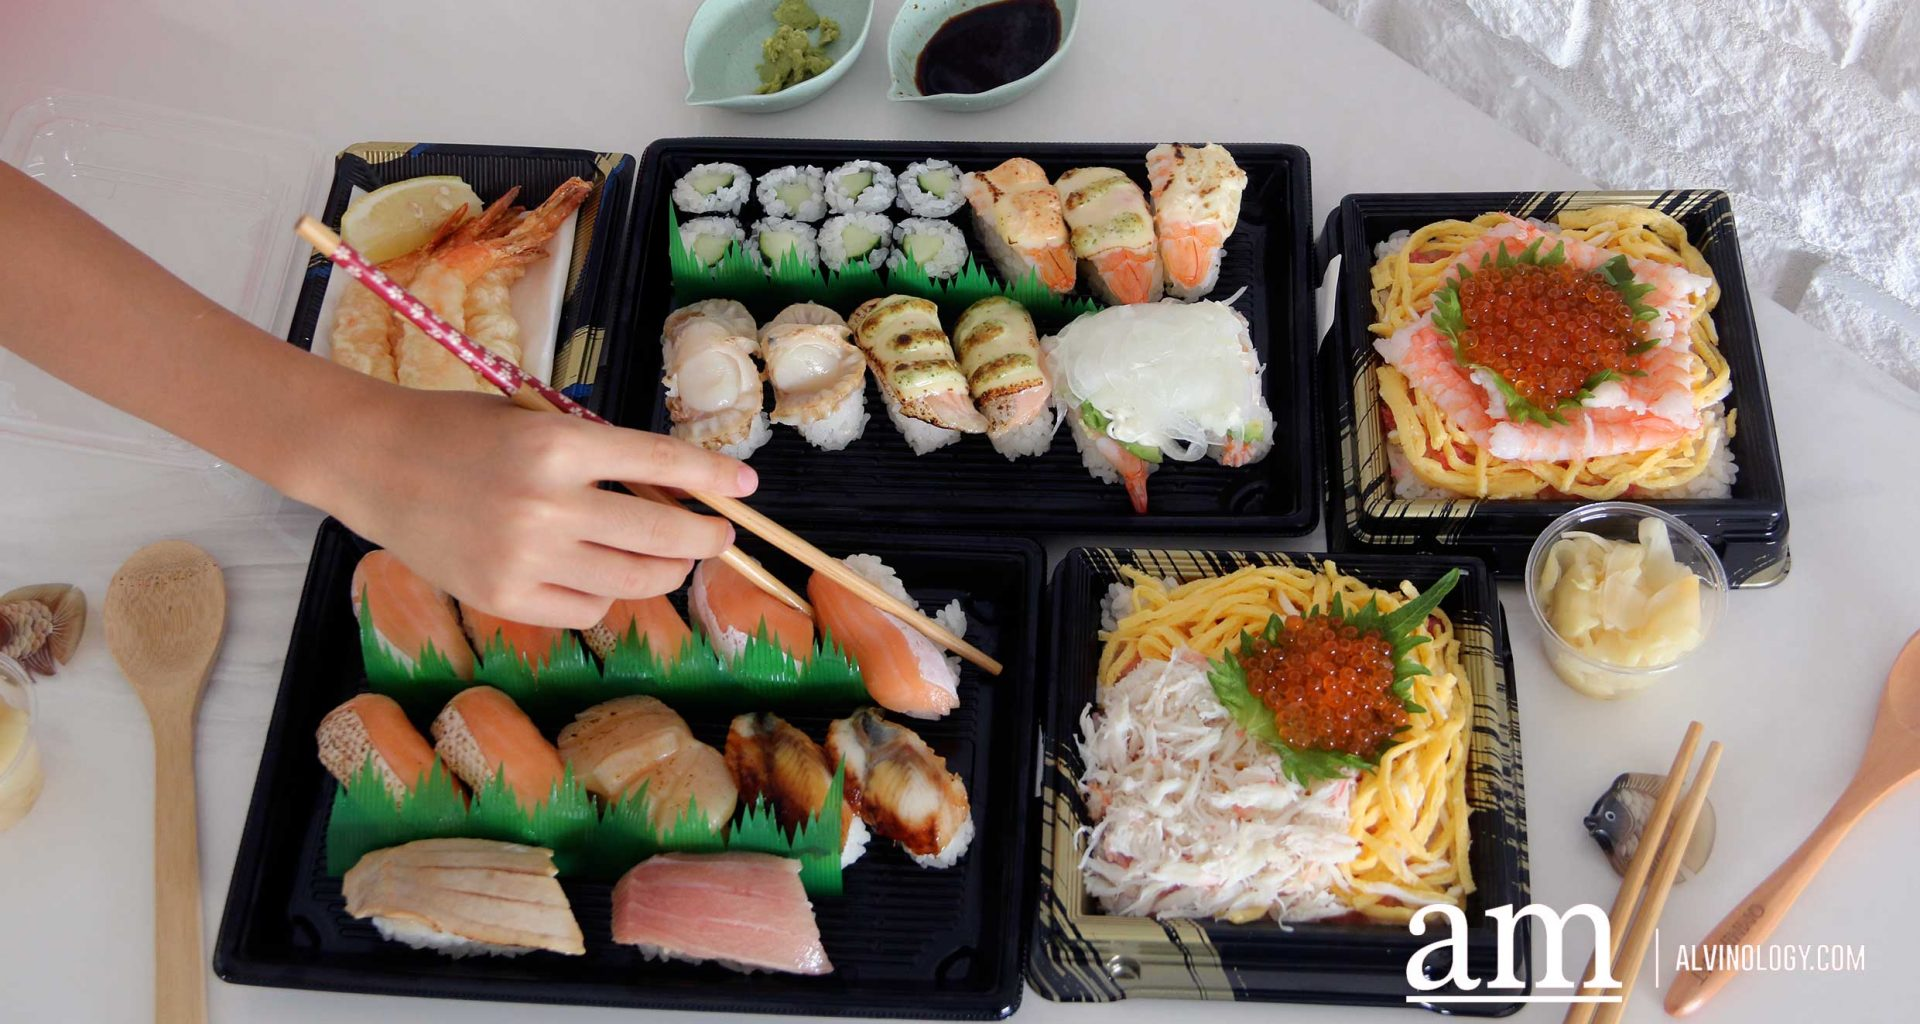 [Review] Build-Your-own Takeaway Sushi Platter from Sushiro Singapore - Alvinology